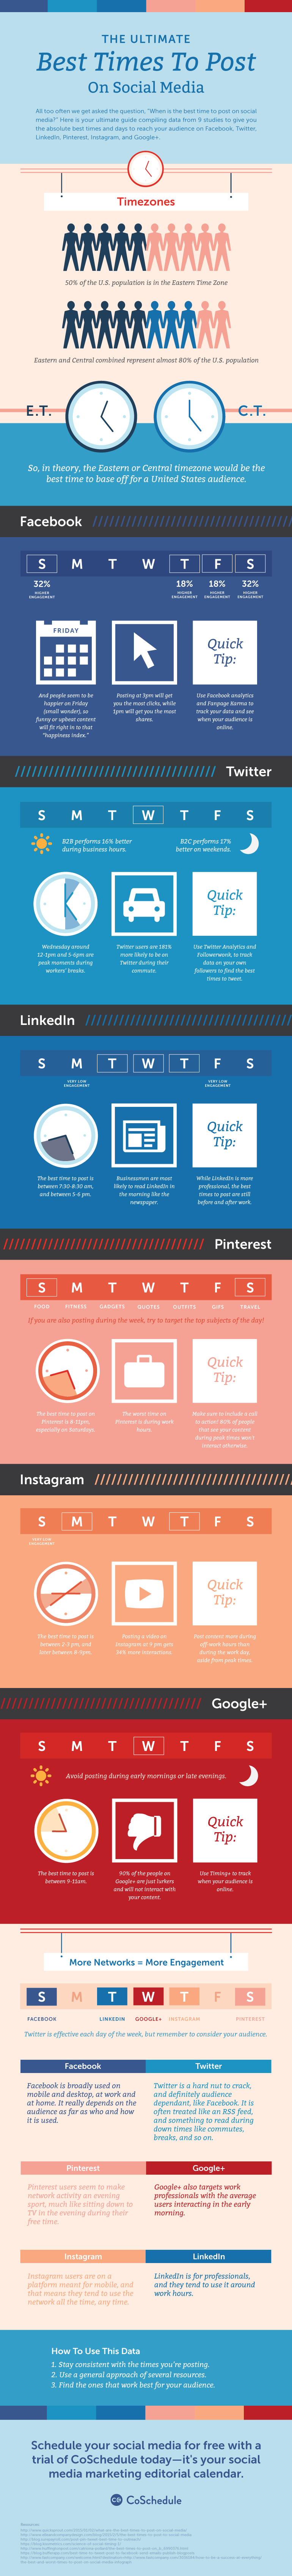 when-is-the-best-time-to-post-on-social-media-infographic